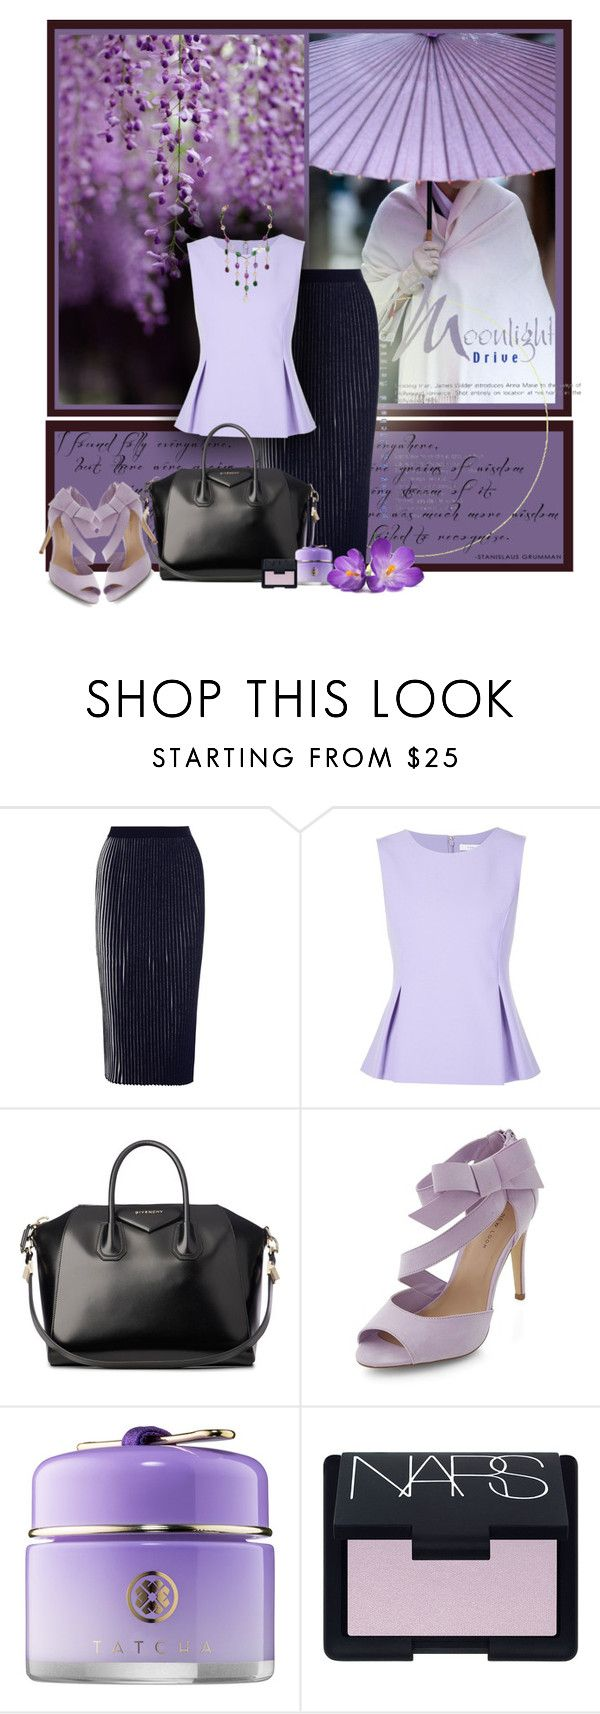 """Moonlight drive"" by anna-survillo ❤ liked on Polyvore featuring 1205, Diane Von Furstenberg, Givenchy, Tatcha, NARS Cosmetics and Chanel"